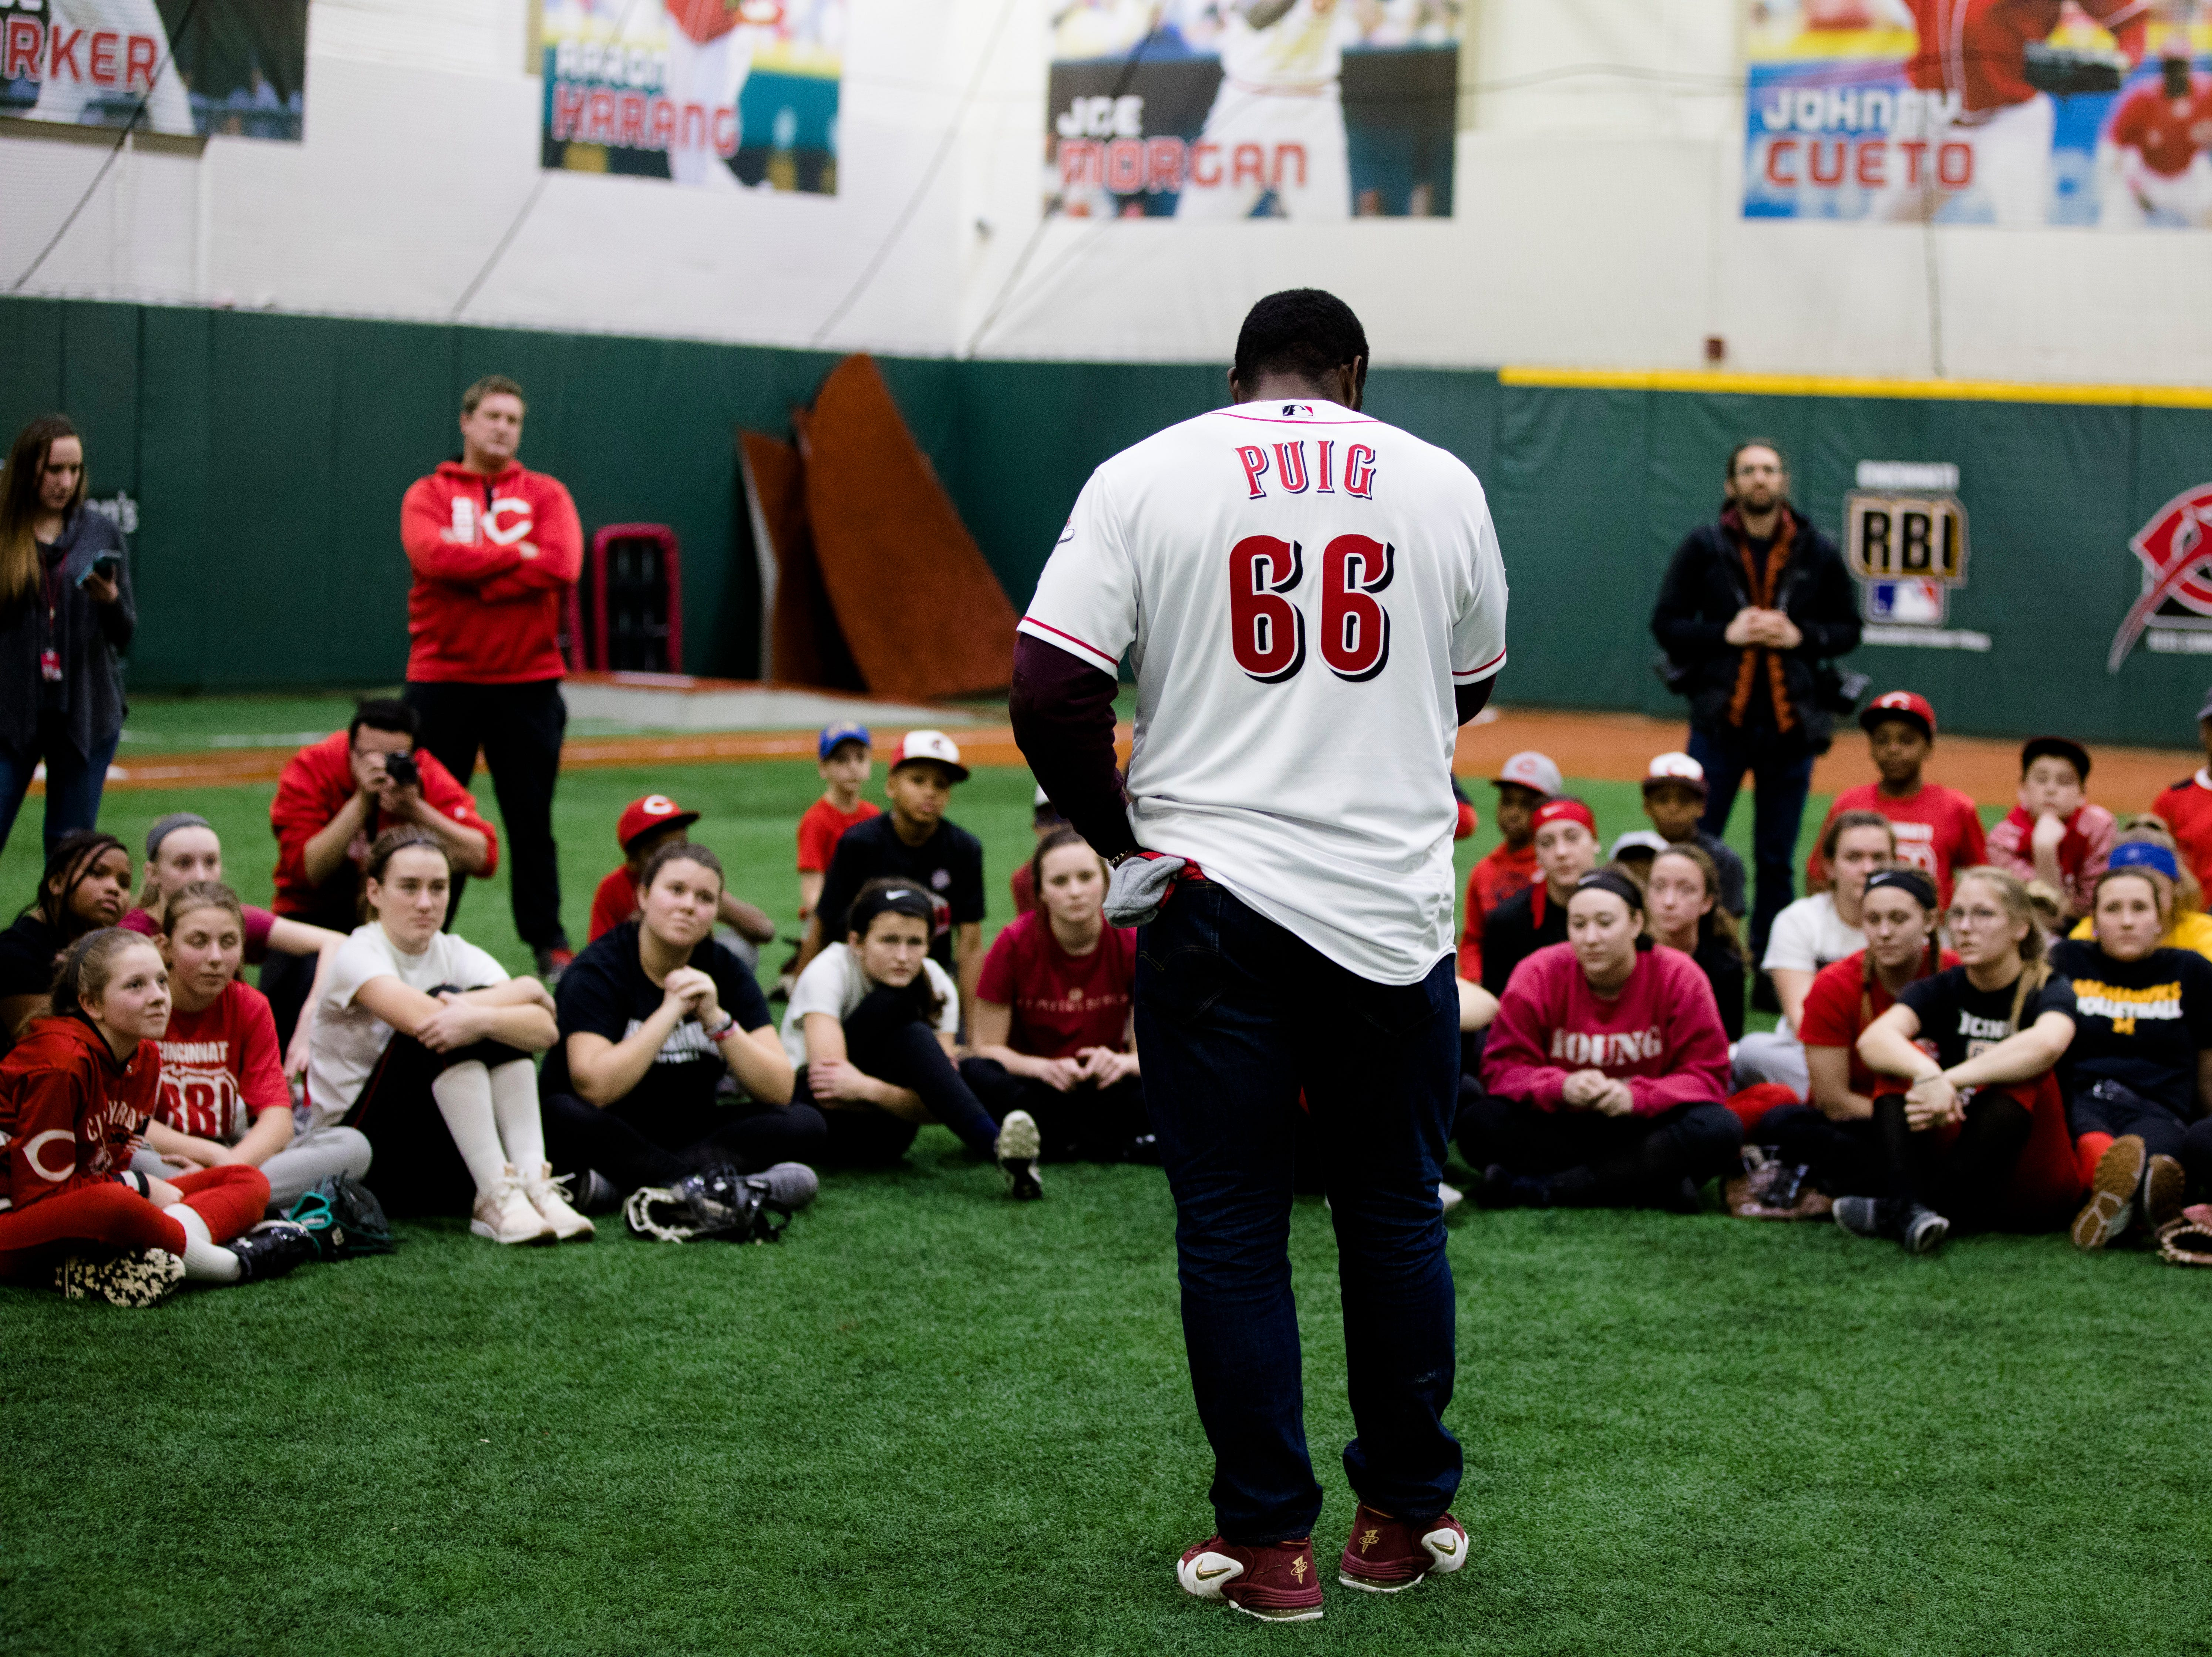 Yasiel Puig, who has been traded to the Cincinnati Reds from the LA Dodgers, speaks to young athletes at the P&G MLB Cincinnati Reds Youth Academy on Wednesday, Jan. 30, 2019.